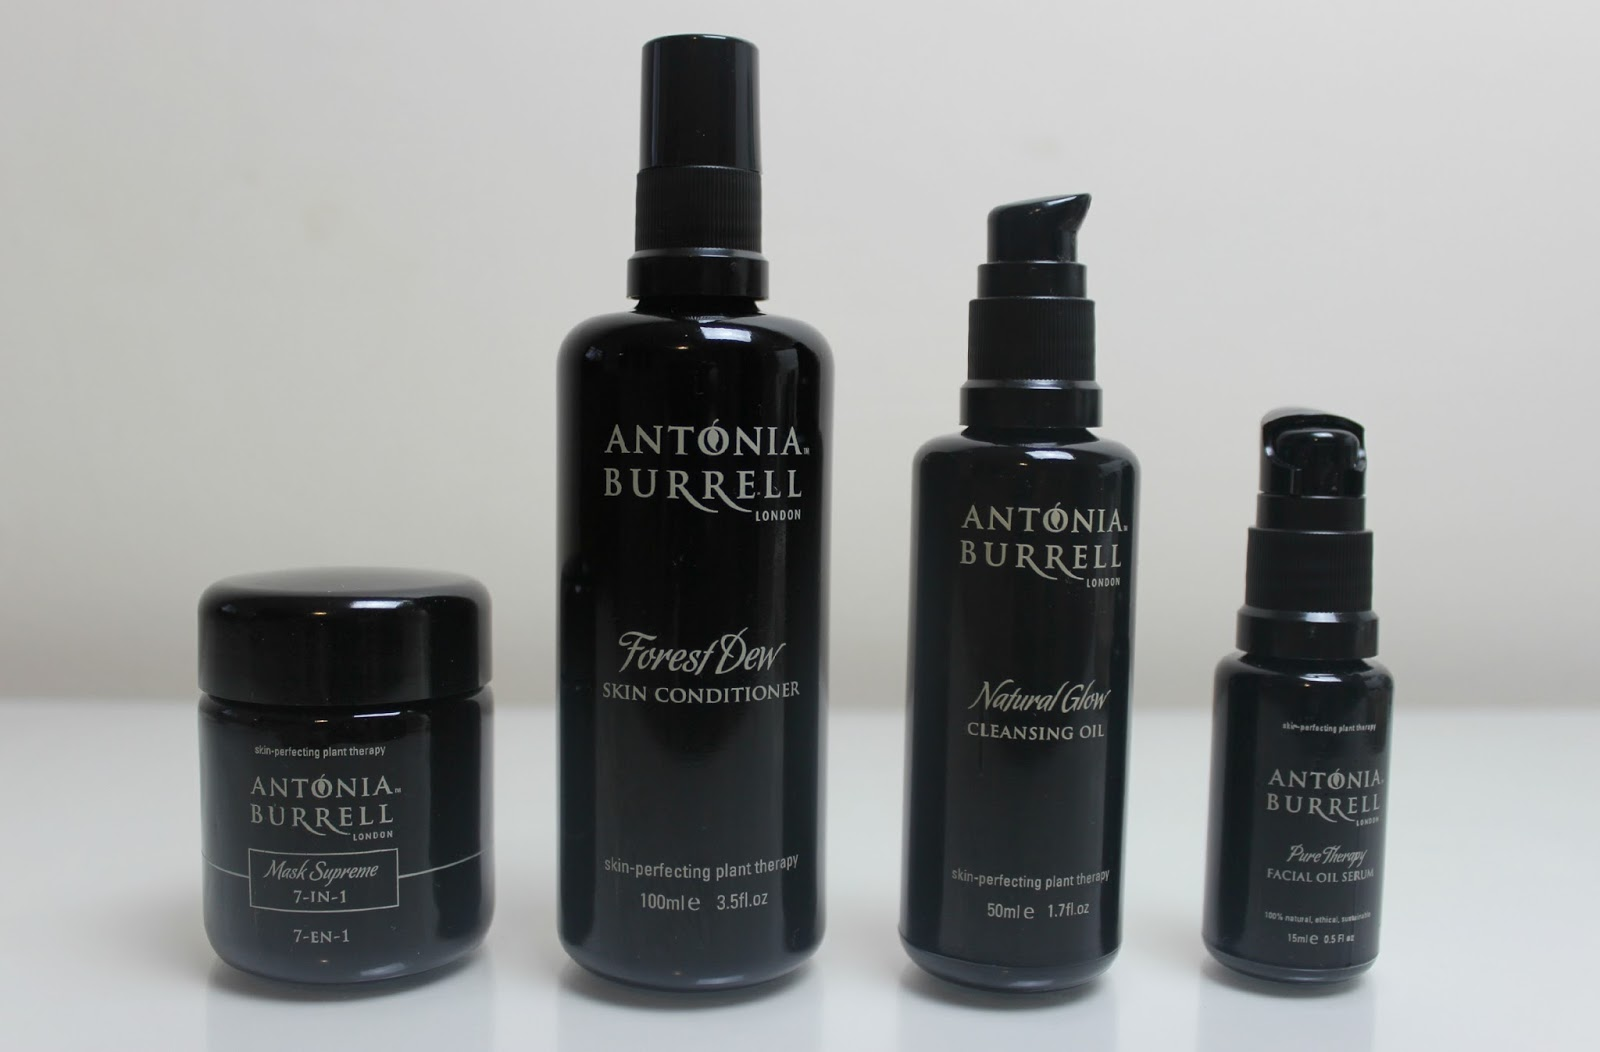 A picture of Antonia Burrell skincare